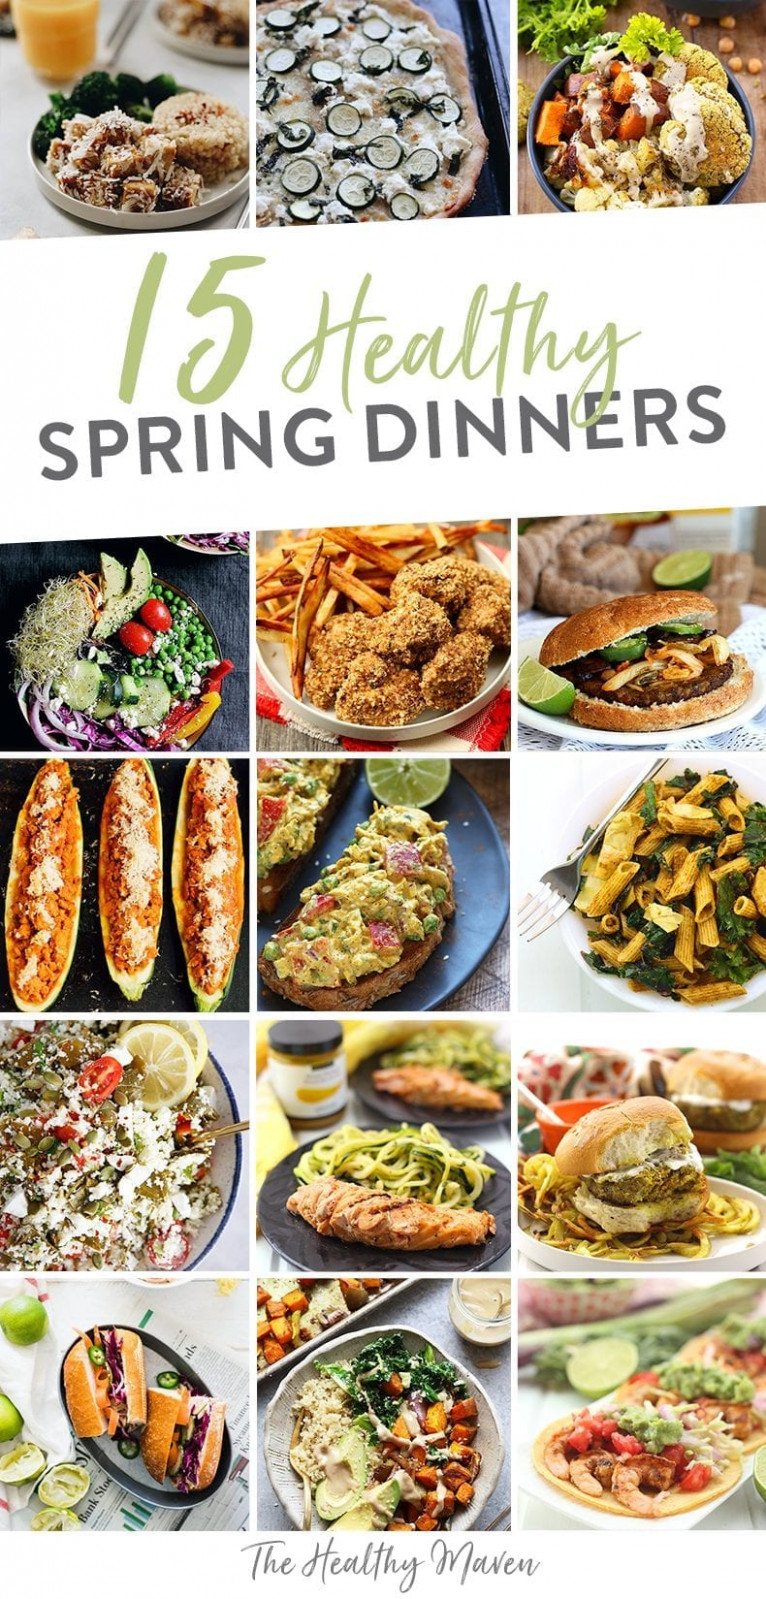 13 Healthy Spring Dinner Recipes - The Healthy Maven - Recipes Dinner Friends